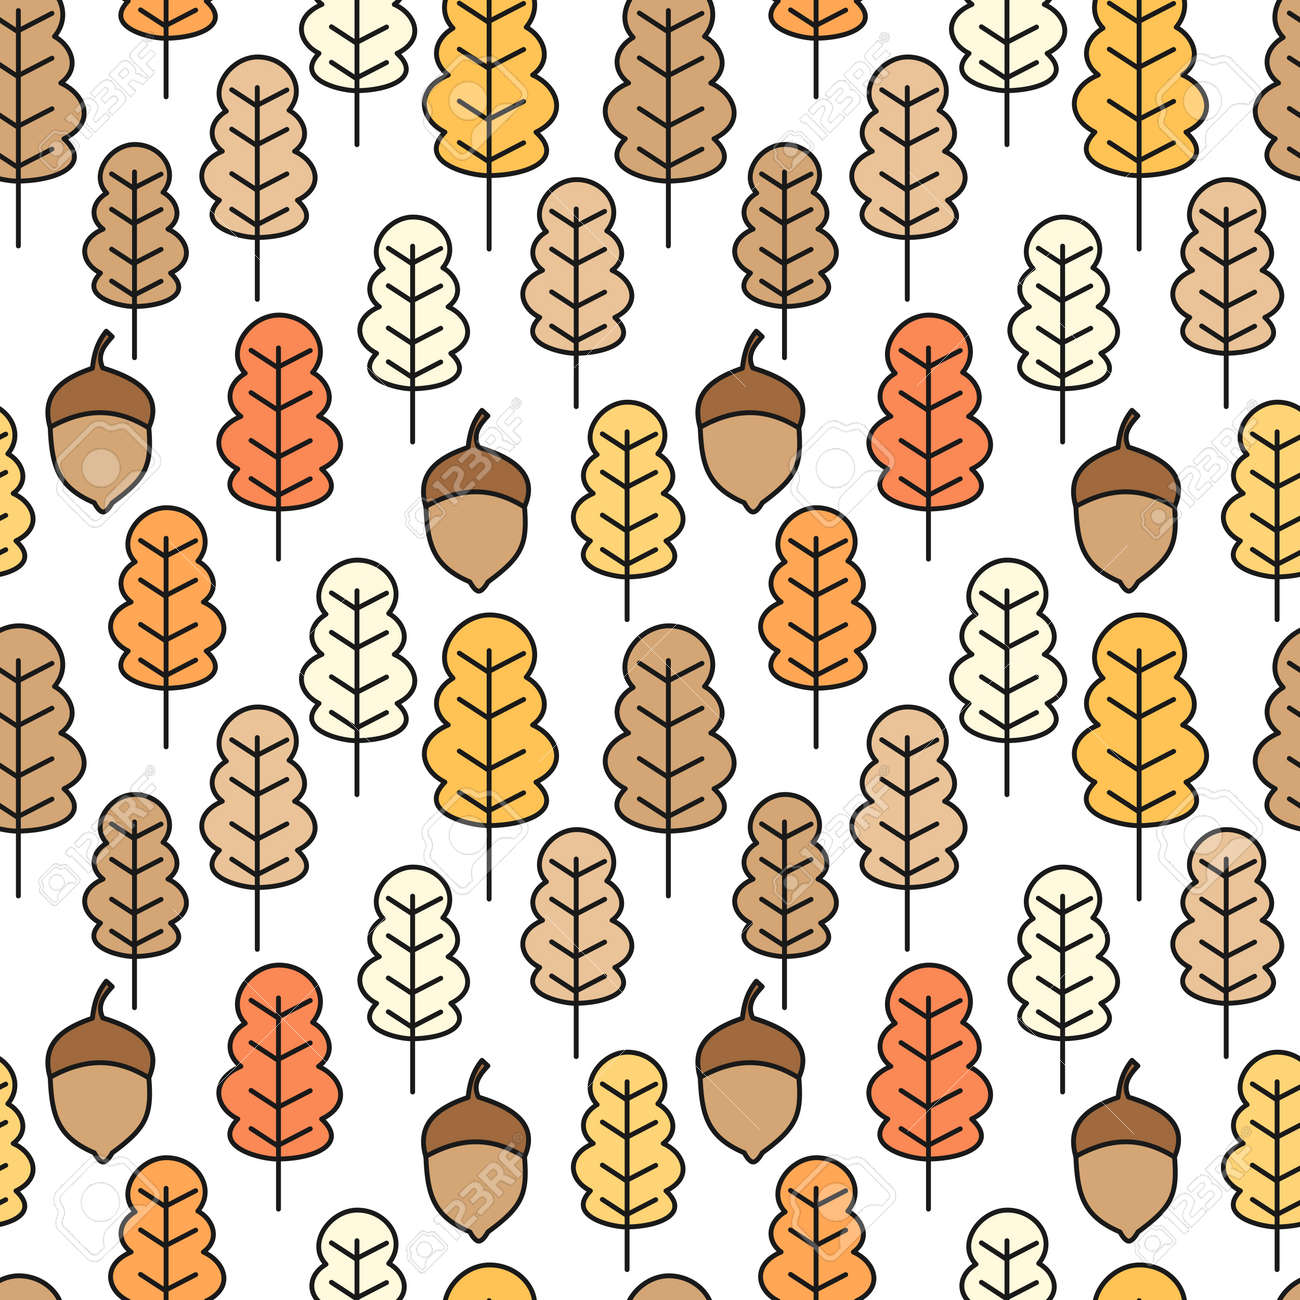 Cute Seamless Vector Pattern With Autumn Leaves Wallpaper Gift Royalty Free Cliparts Vectors And Stock Illustration Image 107625362